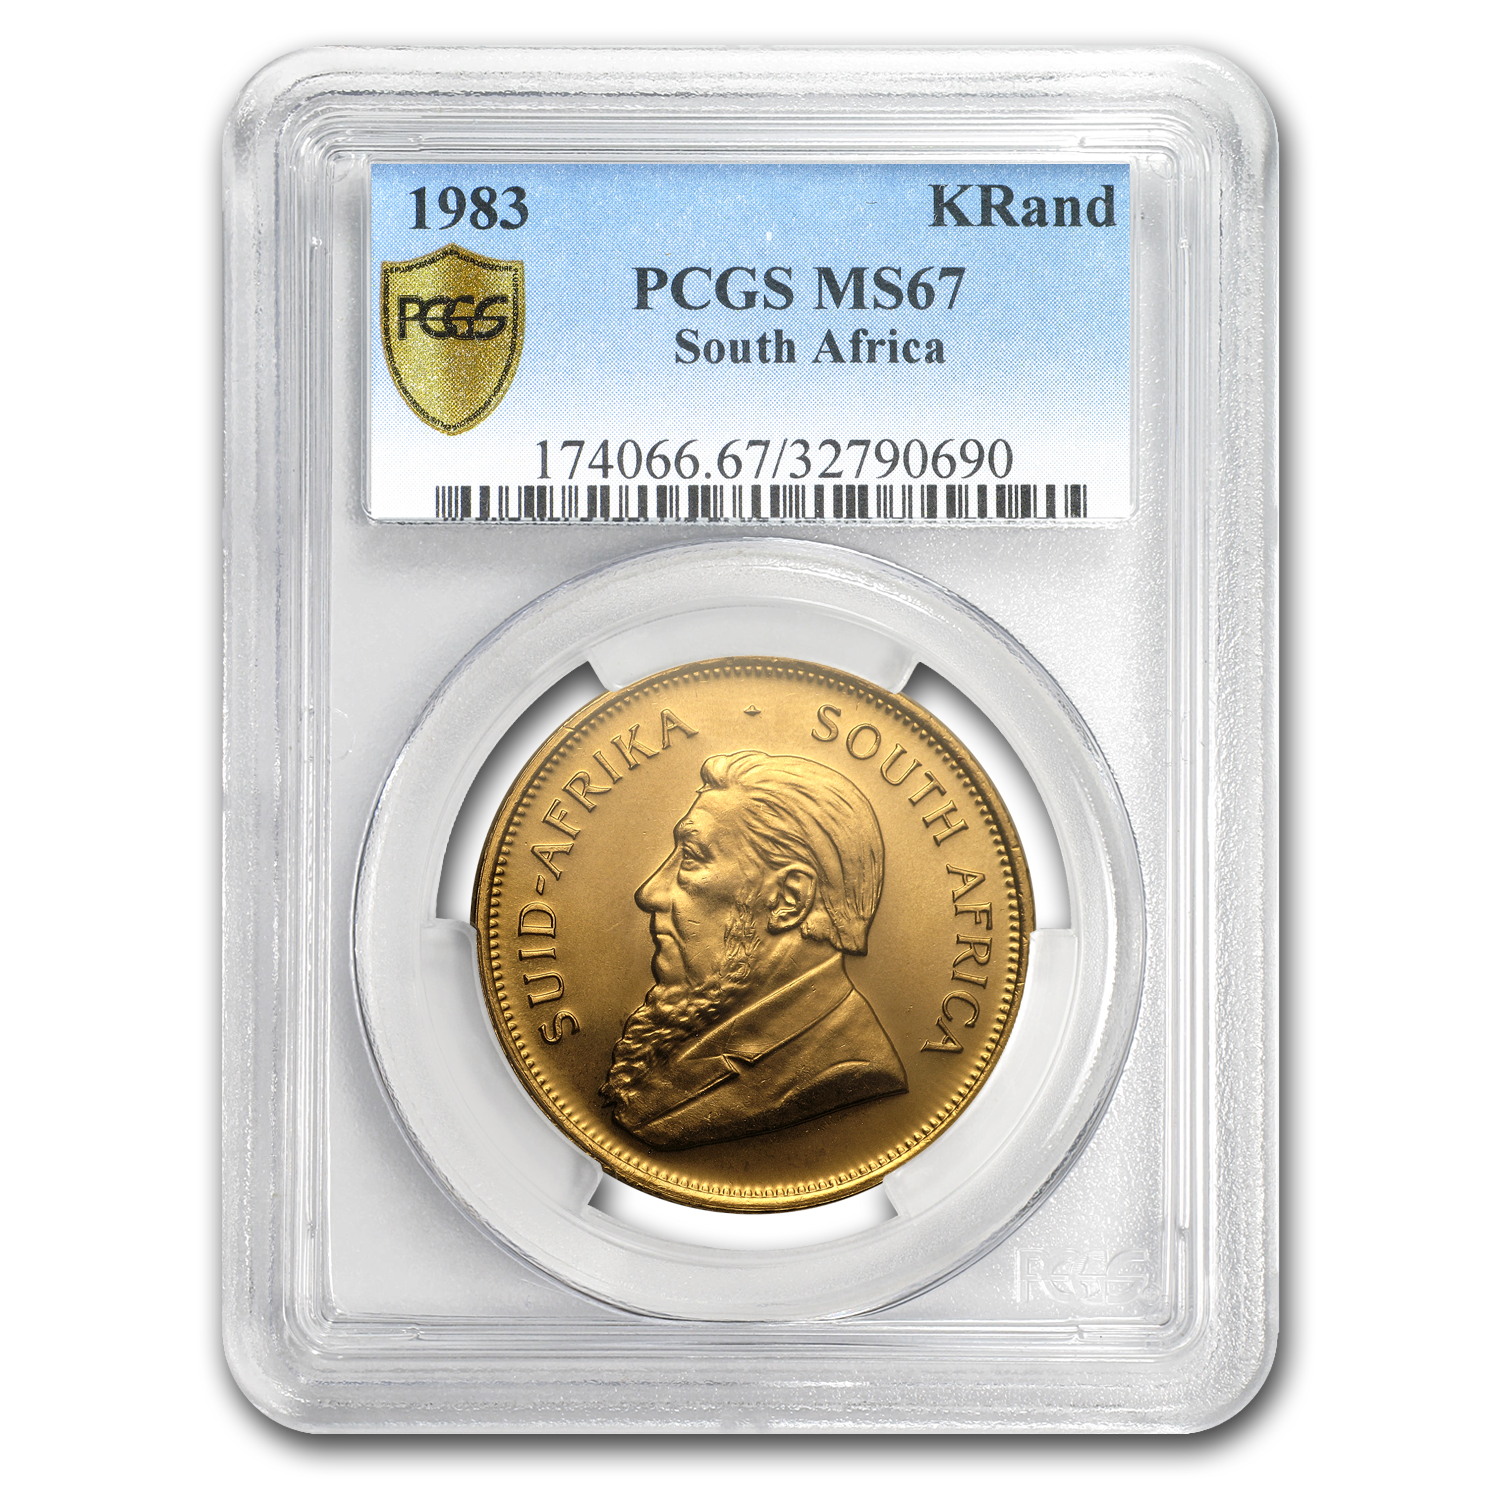 1983 South Africa 1 oz Gold Krugerrand MS-67 PCGS